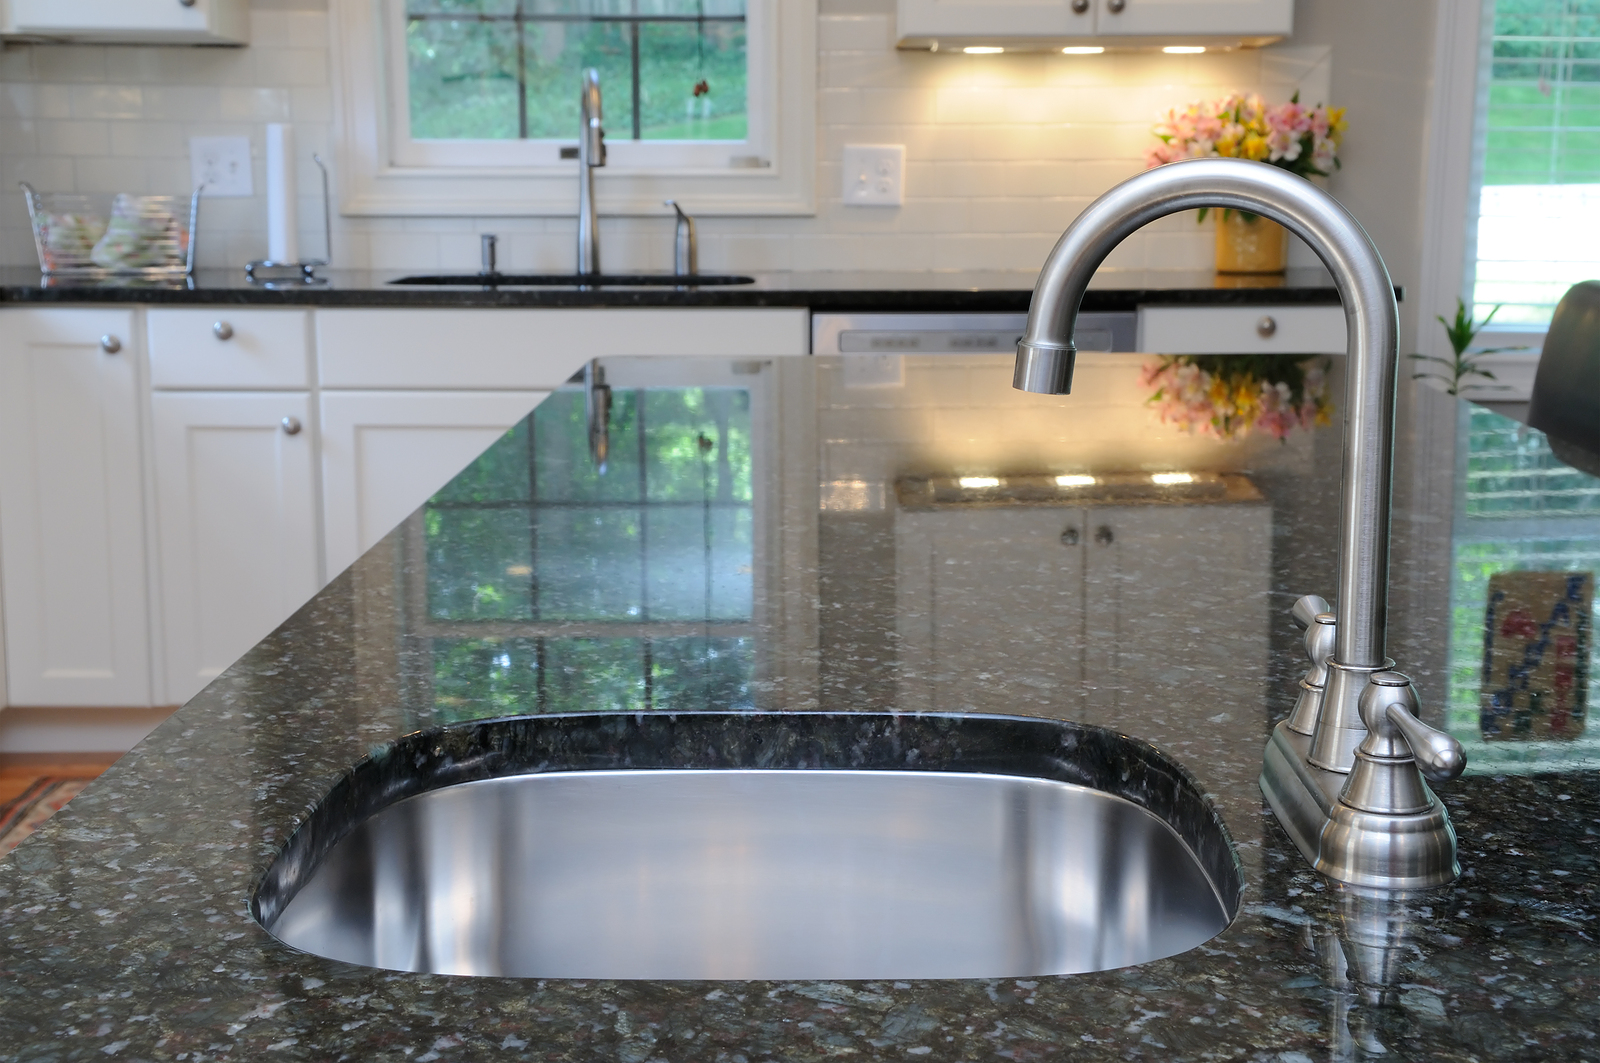 of granite countertops kitchen louis area aphrodite care countertop st